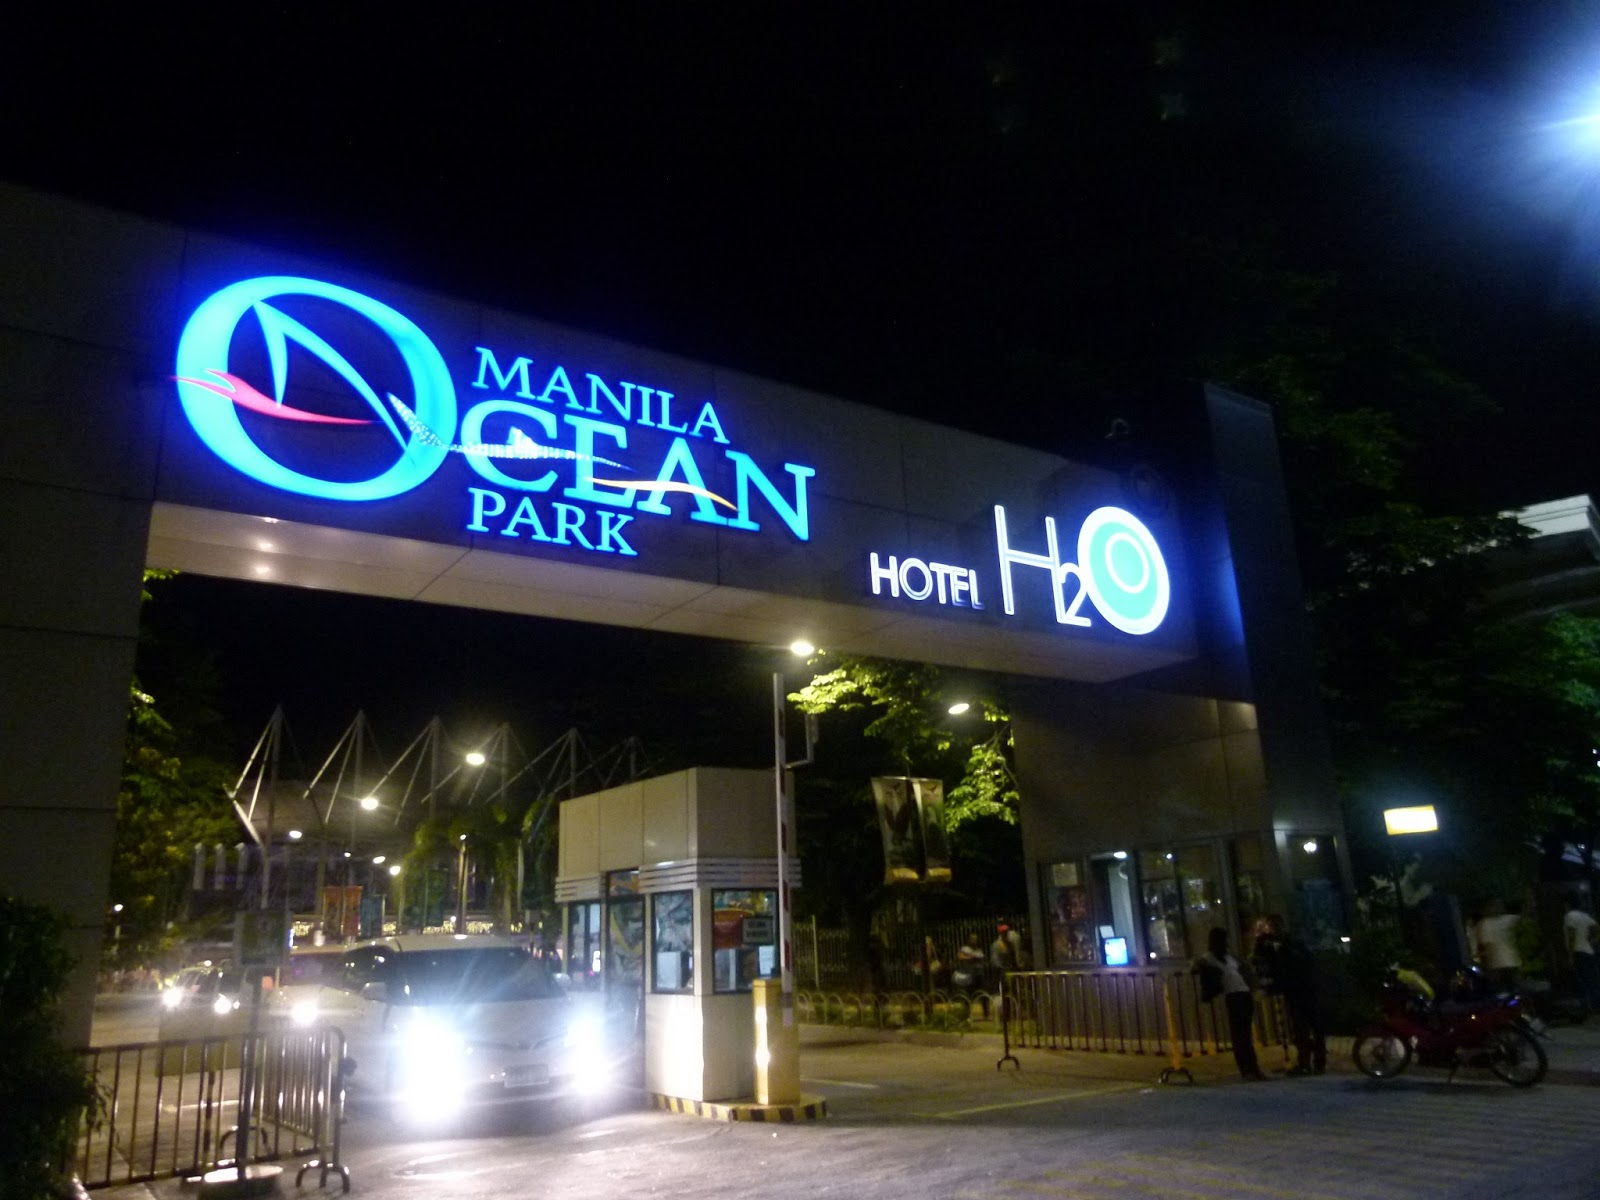 manila ocean park essay From a spectacular marine themed park, manila ocean park has finally evolved into metro's holiday destination where everything is all about life and living.